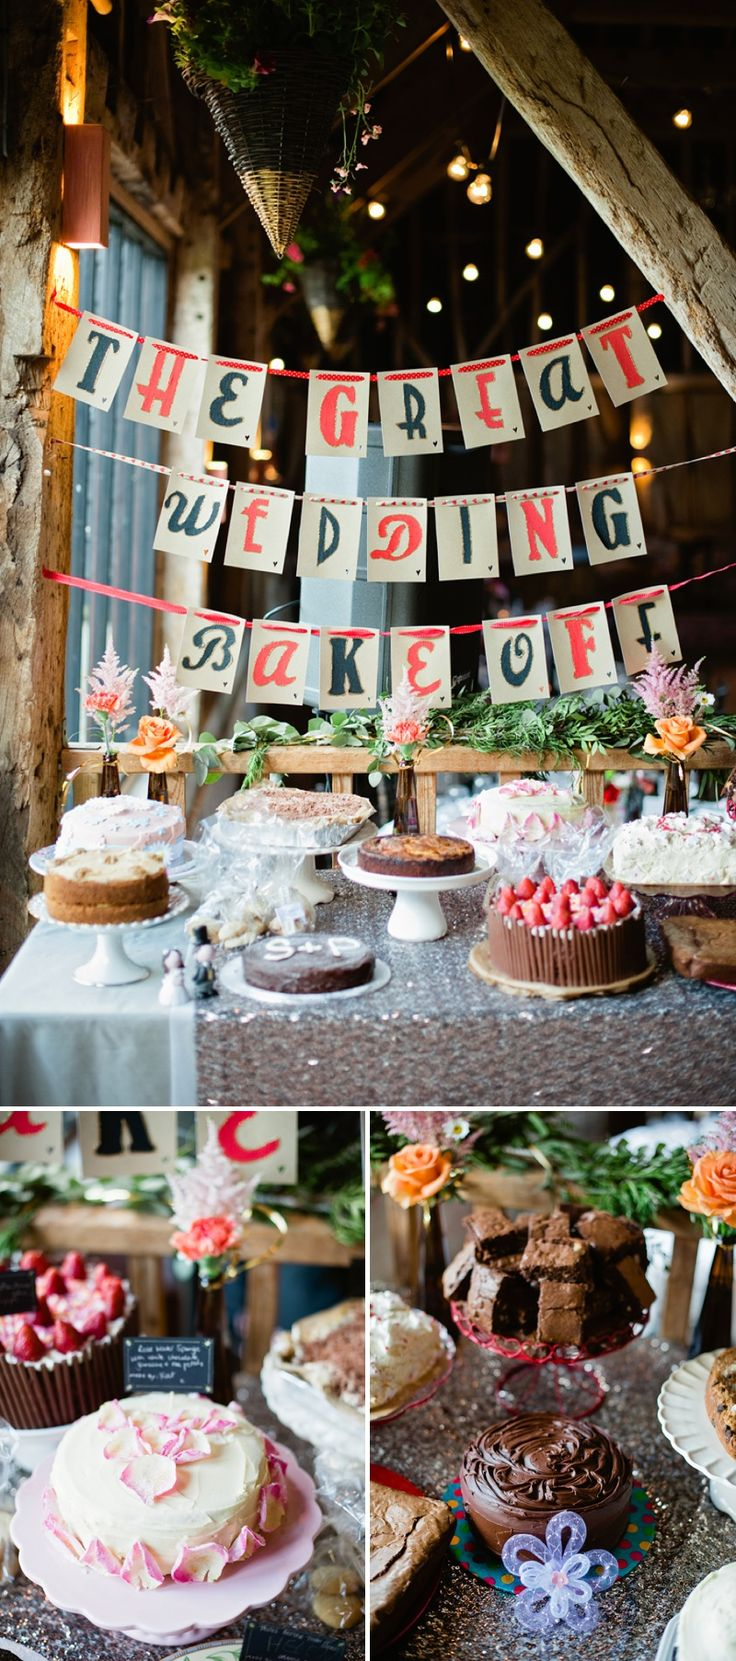 Best 25 wedding cake tables ideas on pinterest christmas gift best 25 wedding cake tables ideas on pinterest christmas gift wedding cake under the table and cake table decorations junglespirit Choice Image